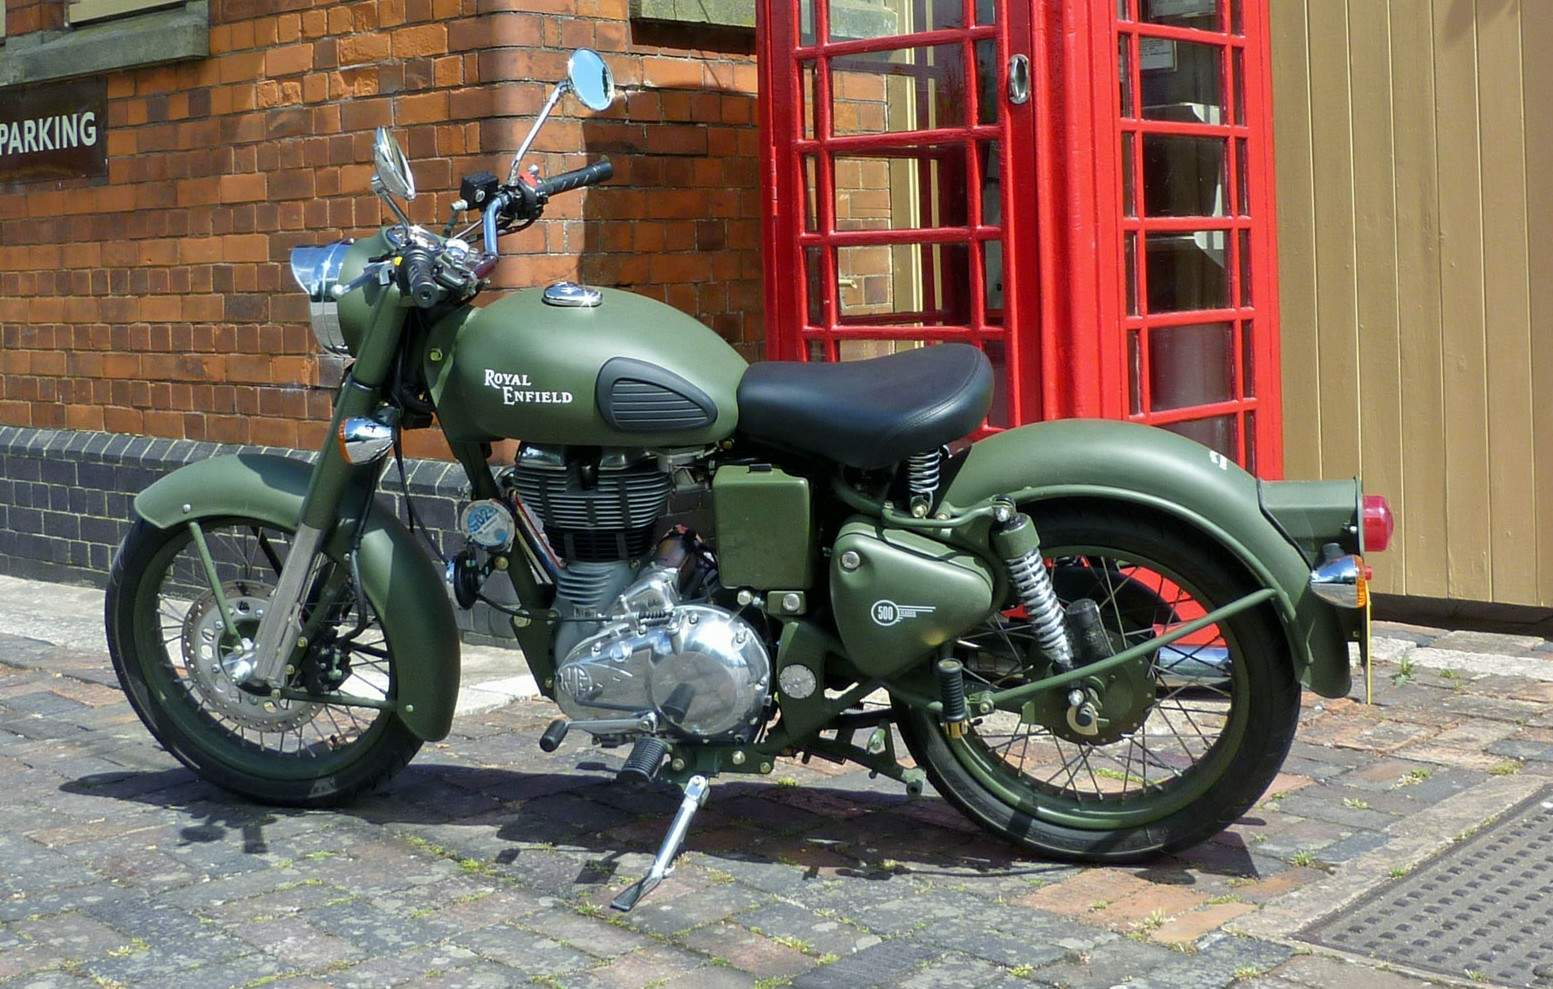 Enfield Bullet Seat Height